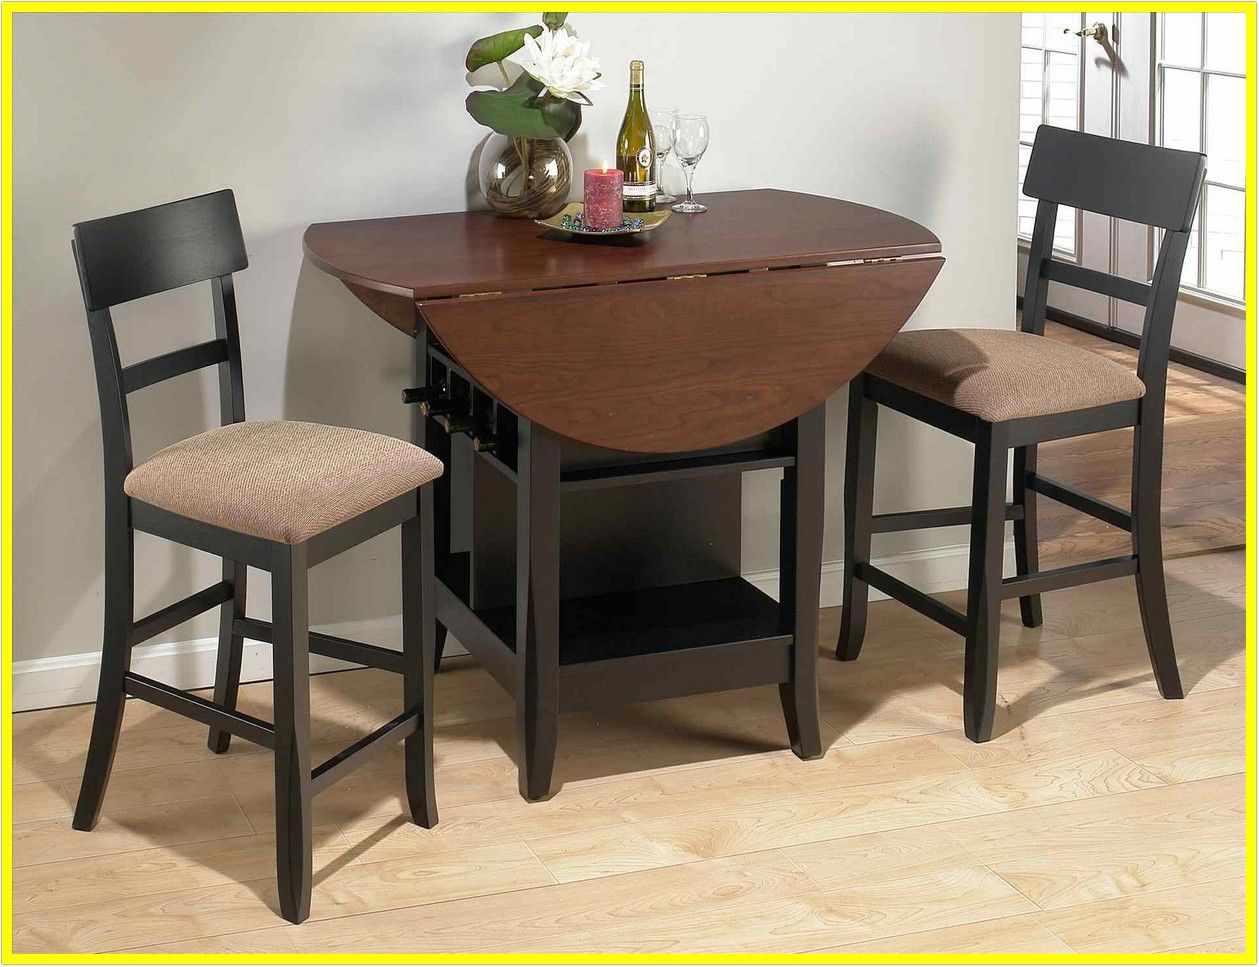 94 Reference Of Small White Kitchen Table And 2 Chairs In 2020 Modern Kitchen Tables Kitchen Table Settings Small Kitchen Tables